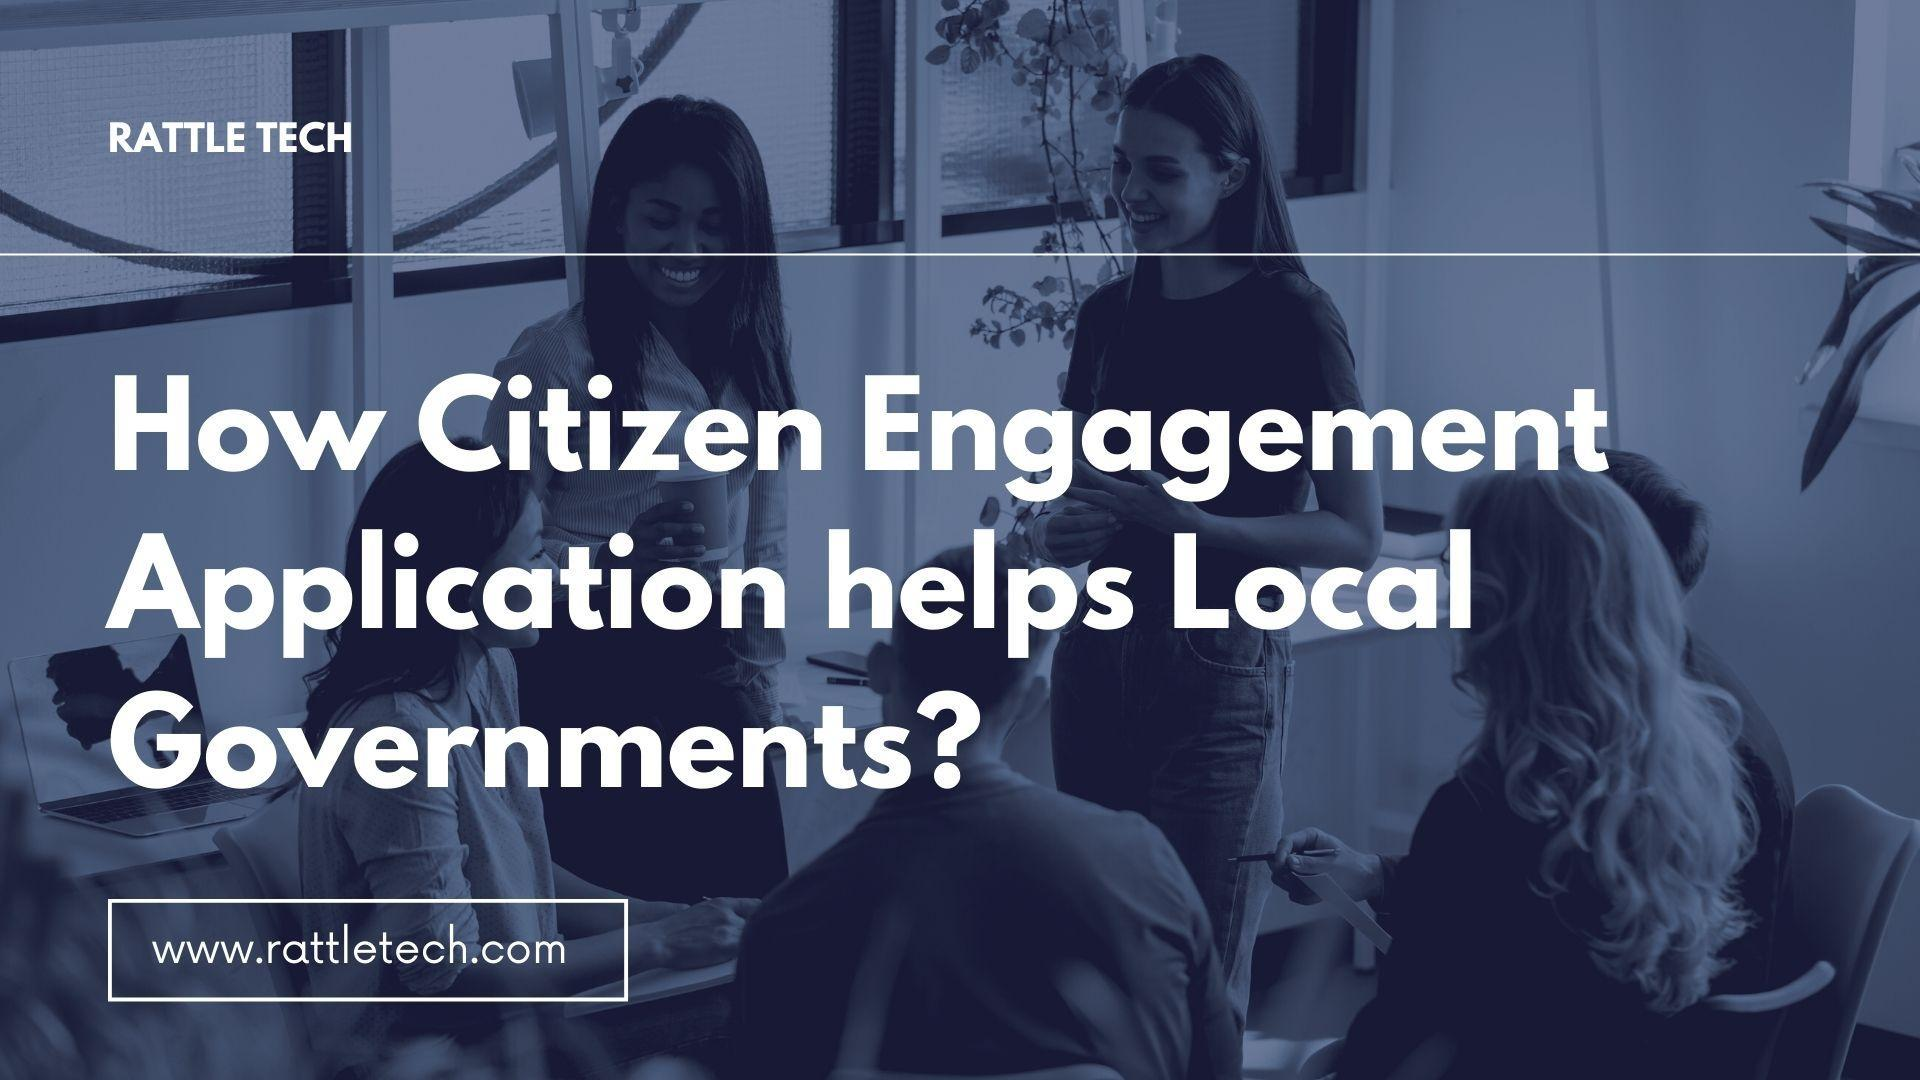 How Citizen Engagement Application helps Local Governments